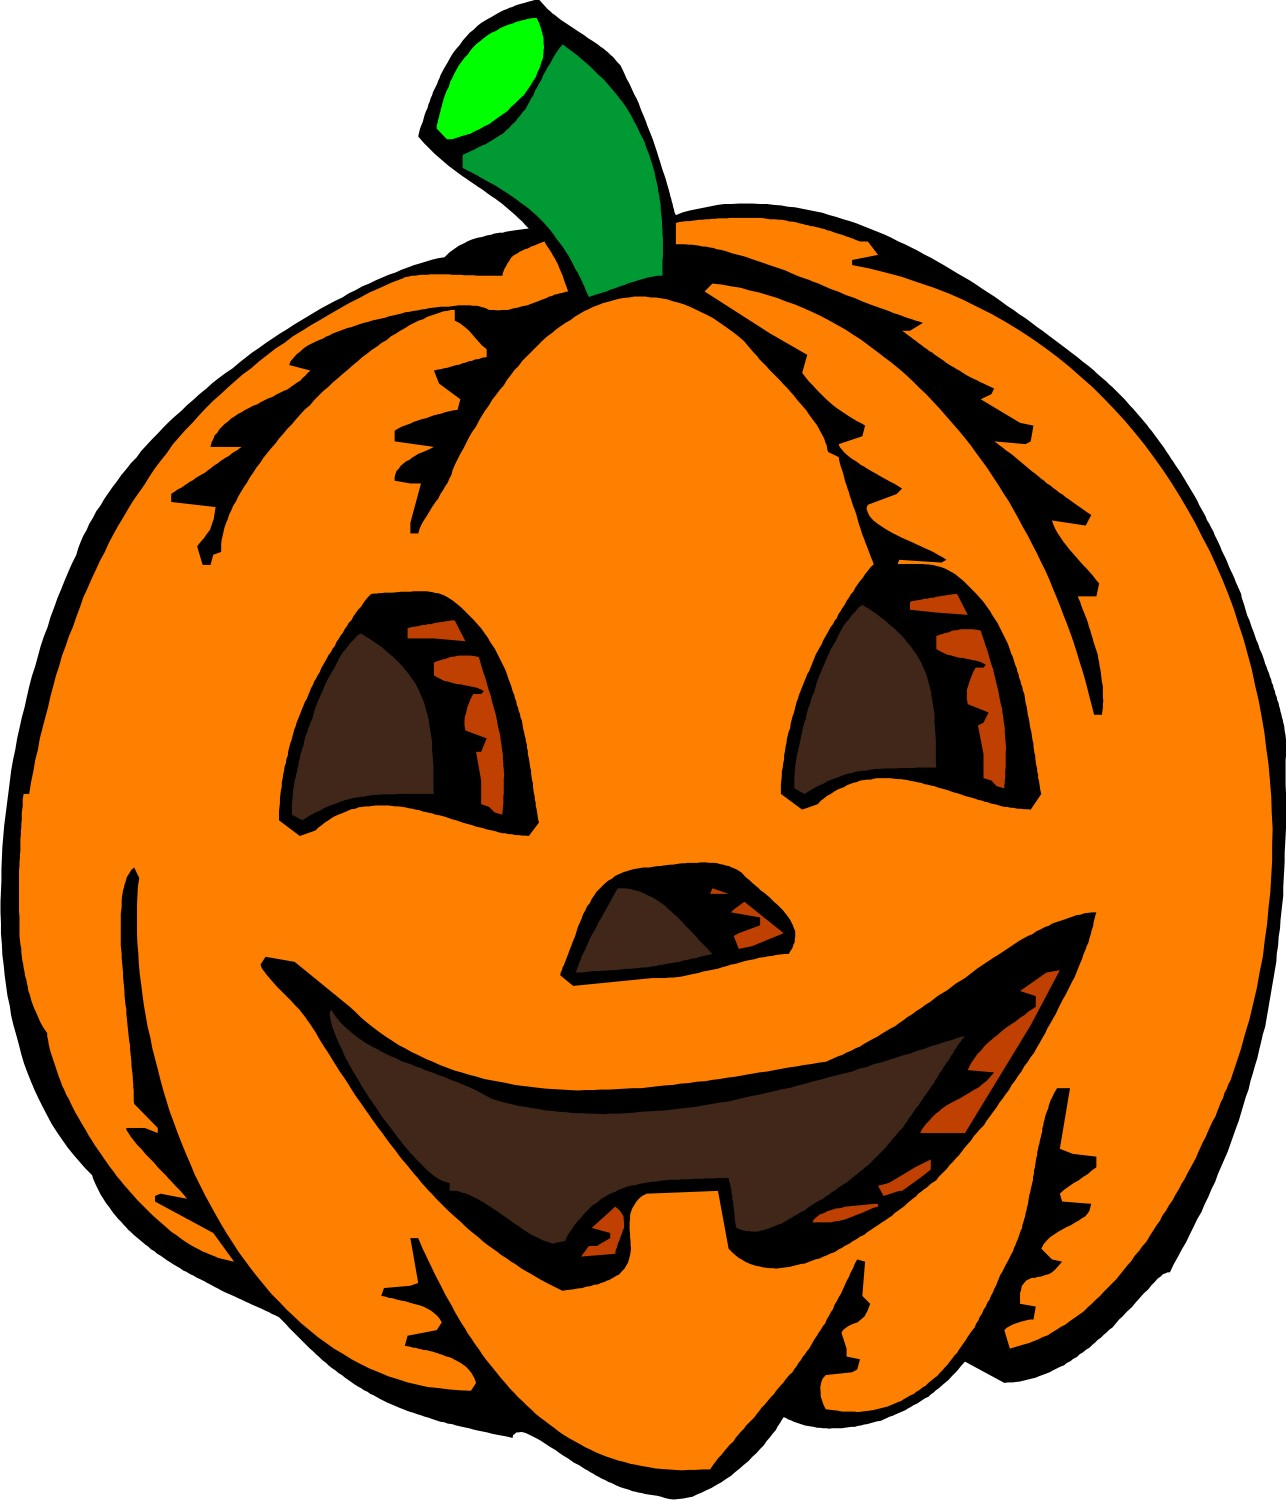 Cartoon Pictures Of Pumpkins - Cliparts.co